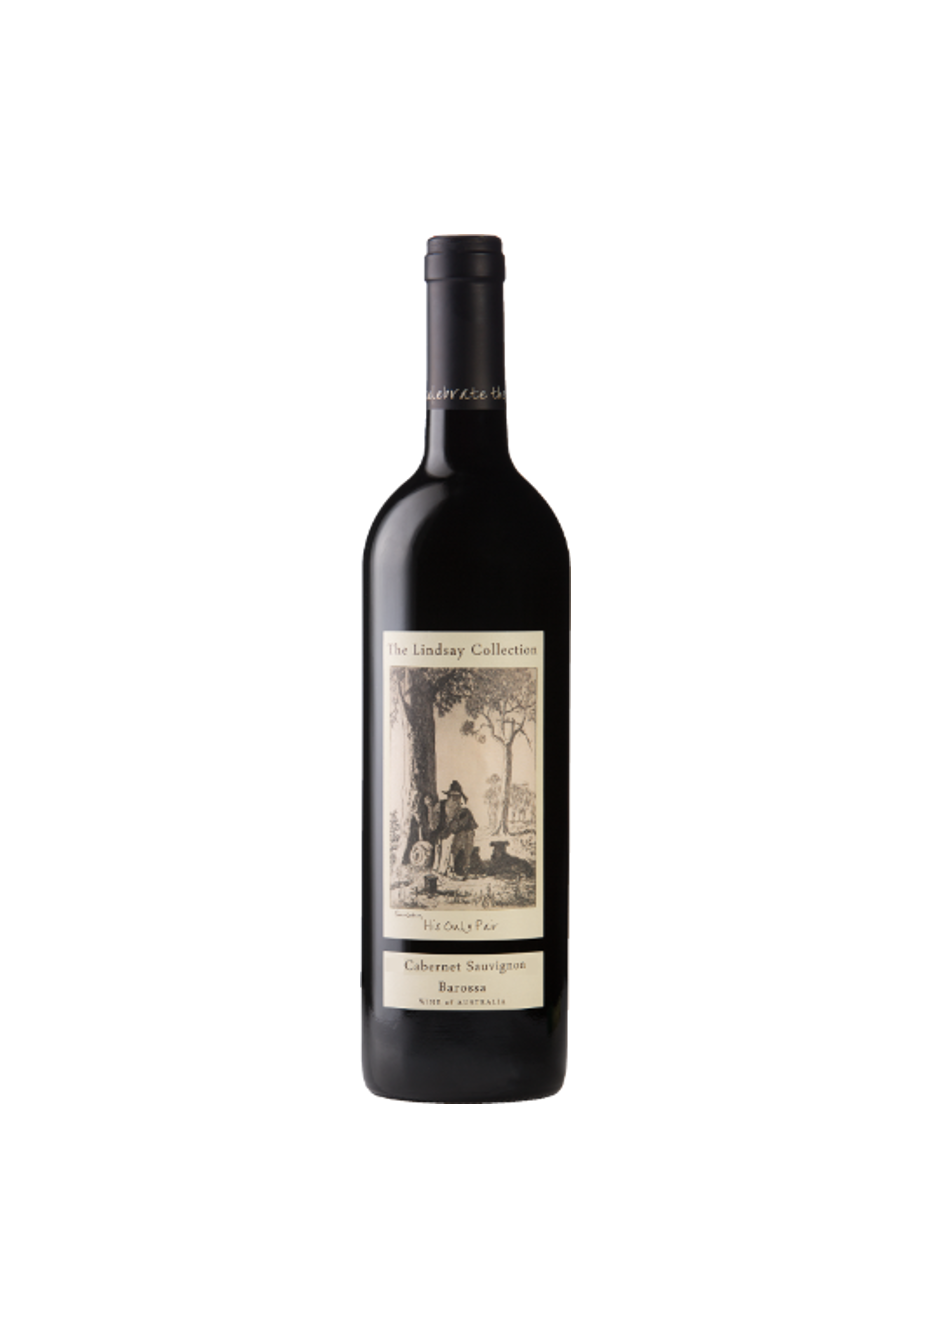 The Lindsay Collection 'His Only Pair' Barossa Valley Cabernet Sauvignon 2016